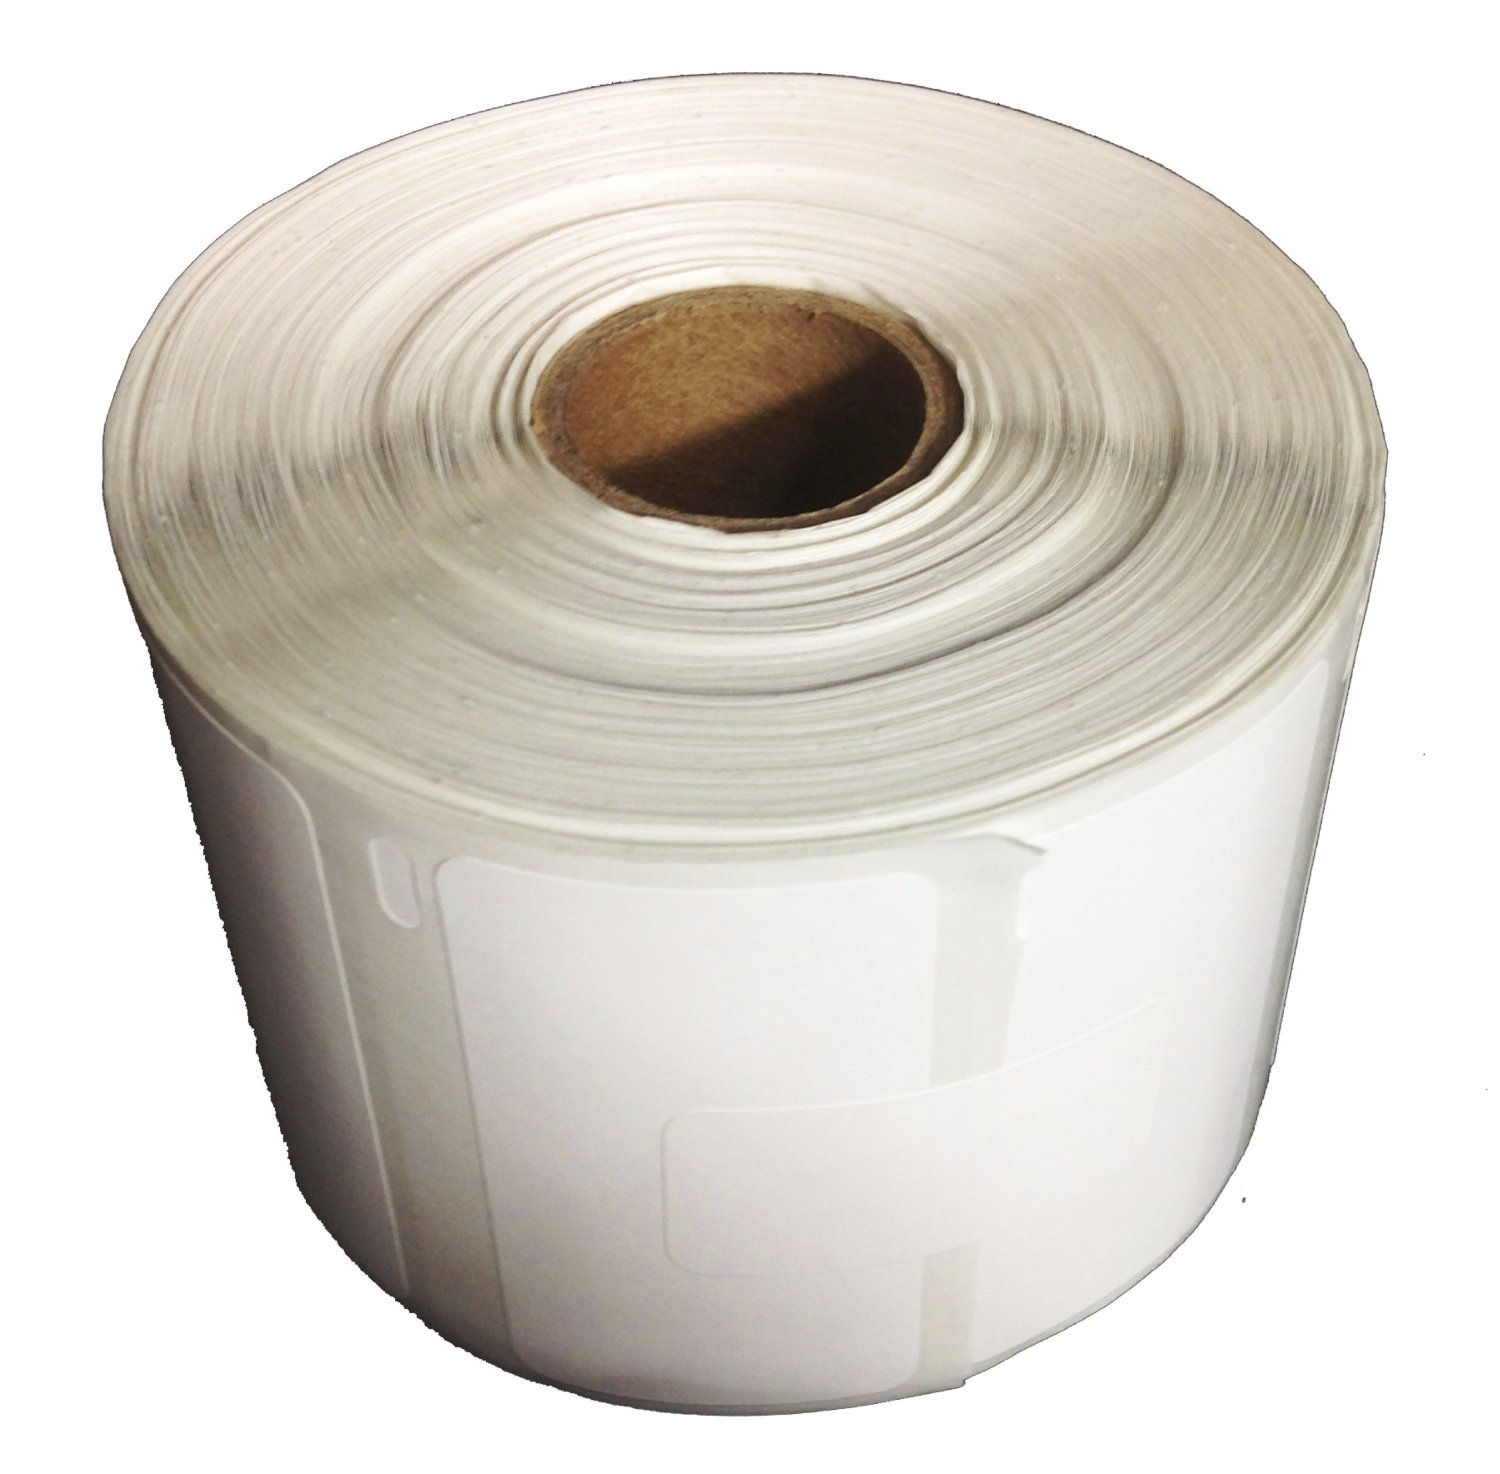 "Dymo Compatible 30334 Identification Labels - 2-1/4"" x 1-1/4"", 1000 Labels Per Roll"